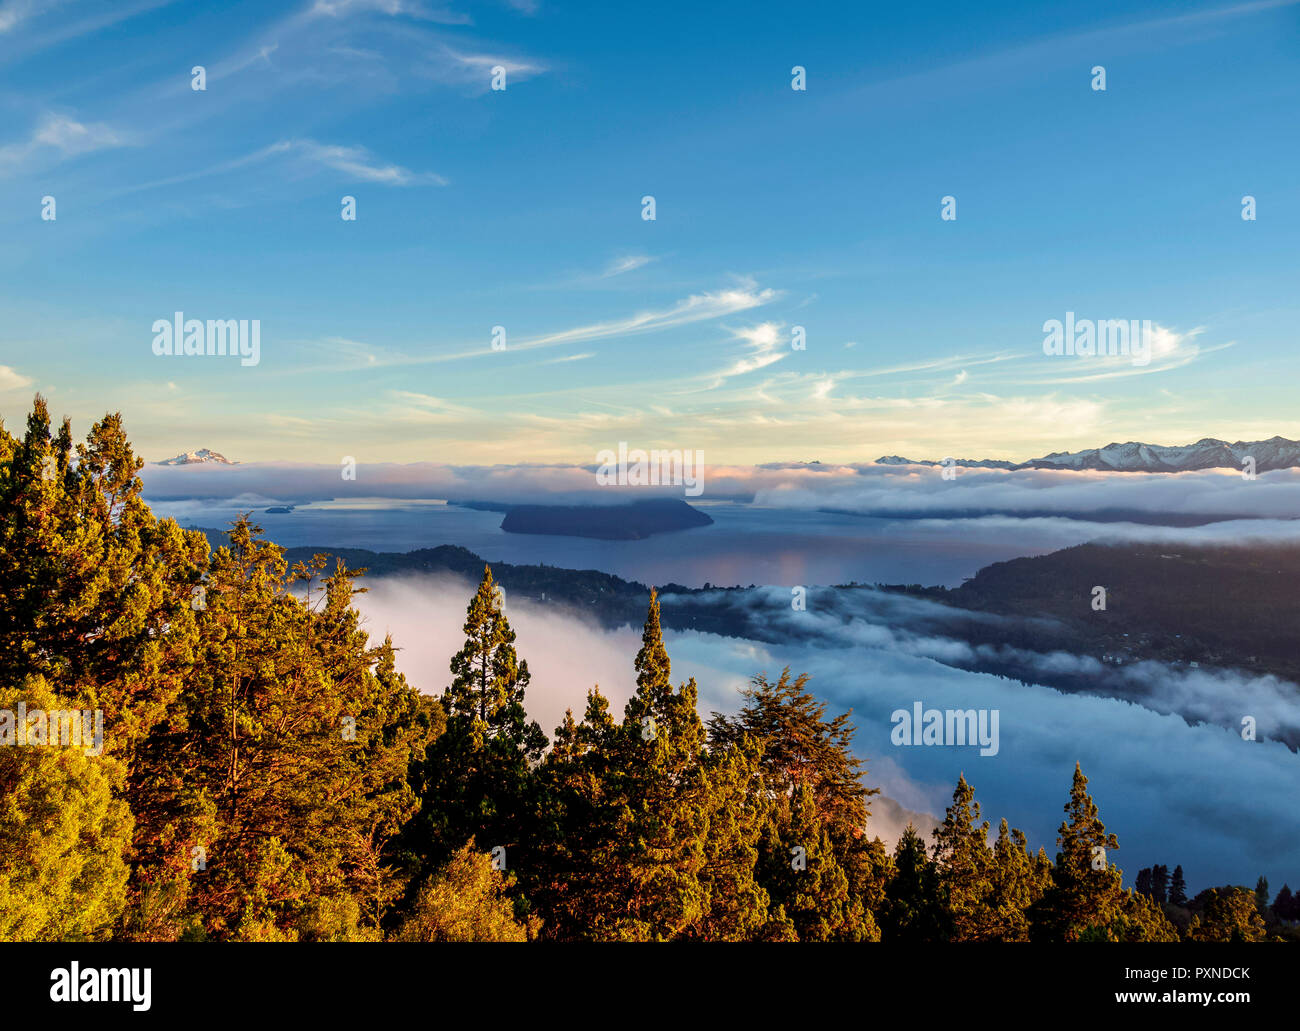 Nahuel Huapi Lake at sunrise, seen from Cerro Campanario, Nahuel Huapi National Park, Rio Negro Province, Argentina - Stock Image